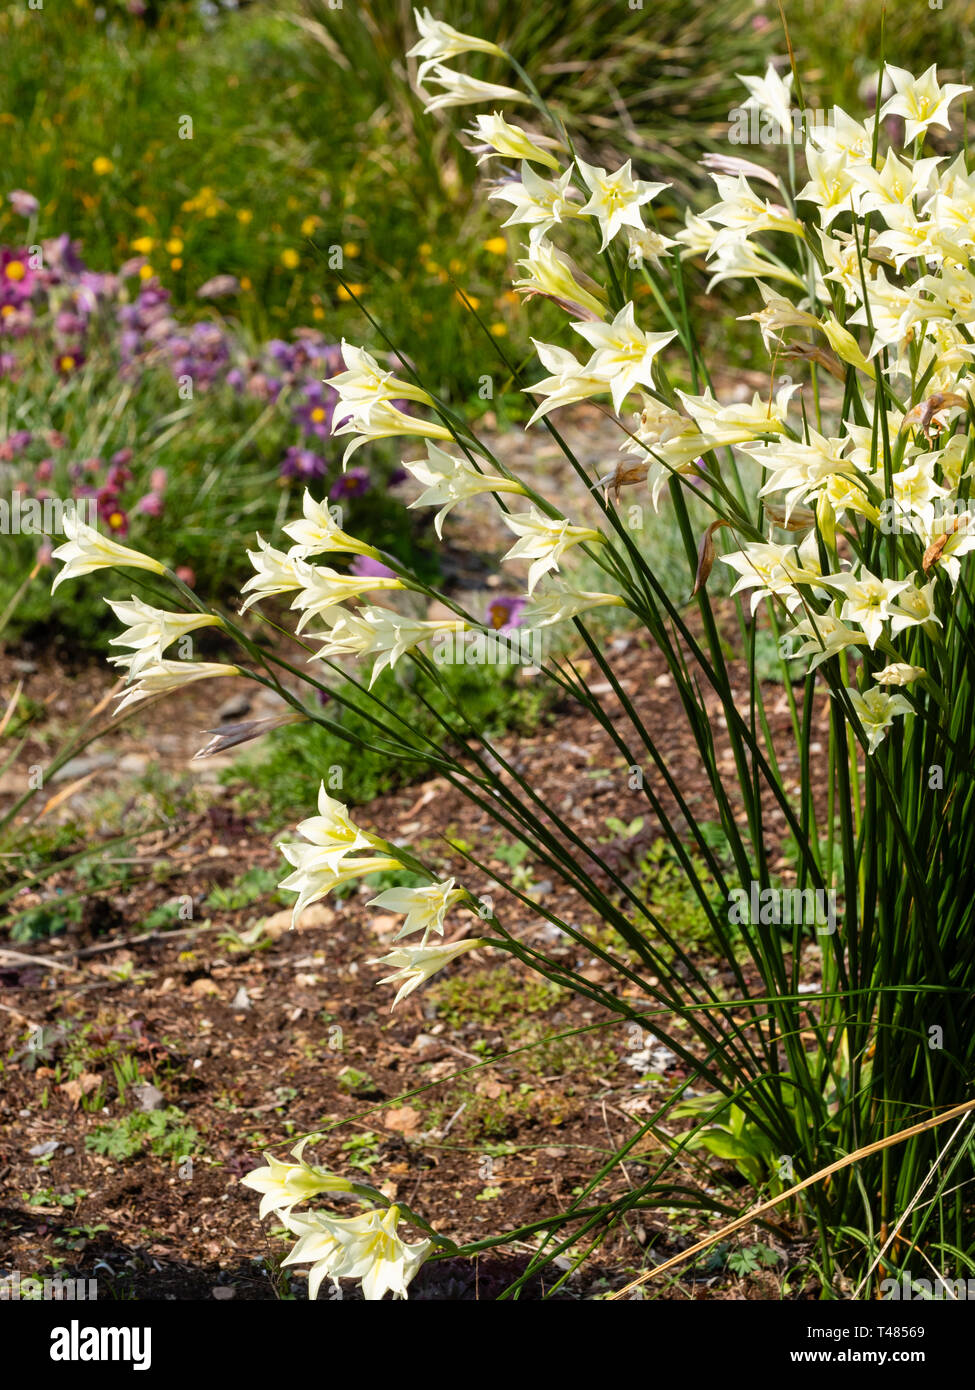 Cream flowered trumpets of the South African, half hardy corm, Gladiolus tristis, in a mid spring display - Stock Image